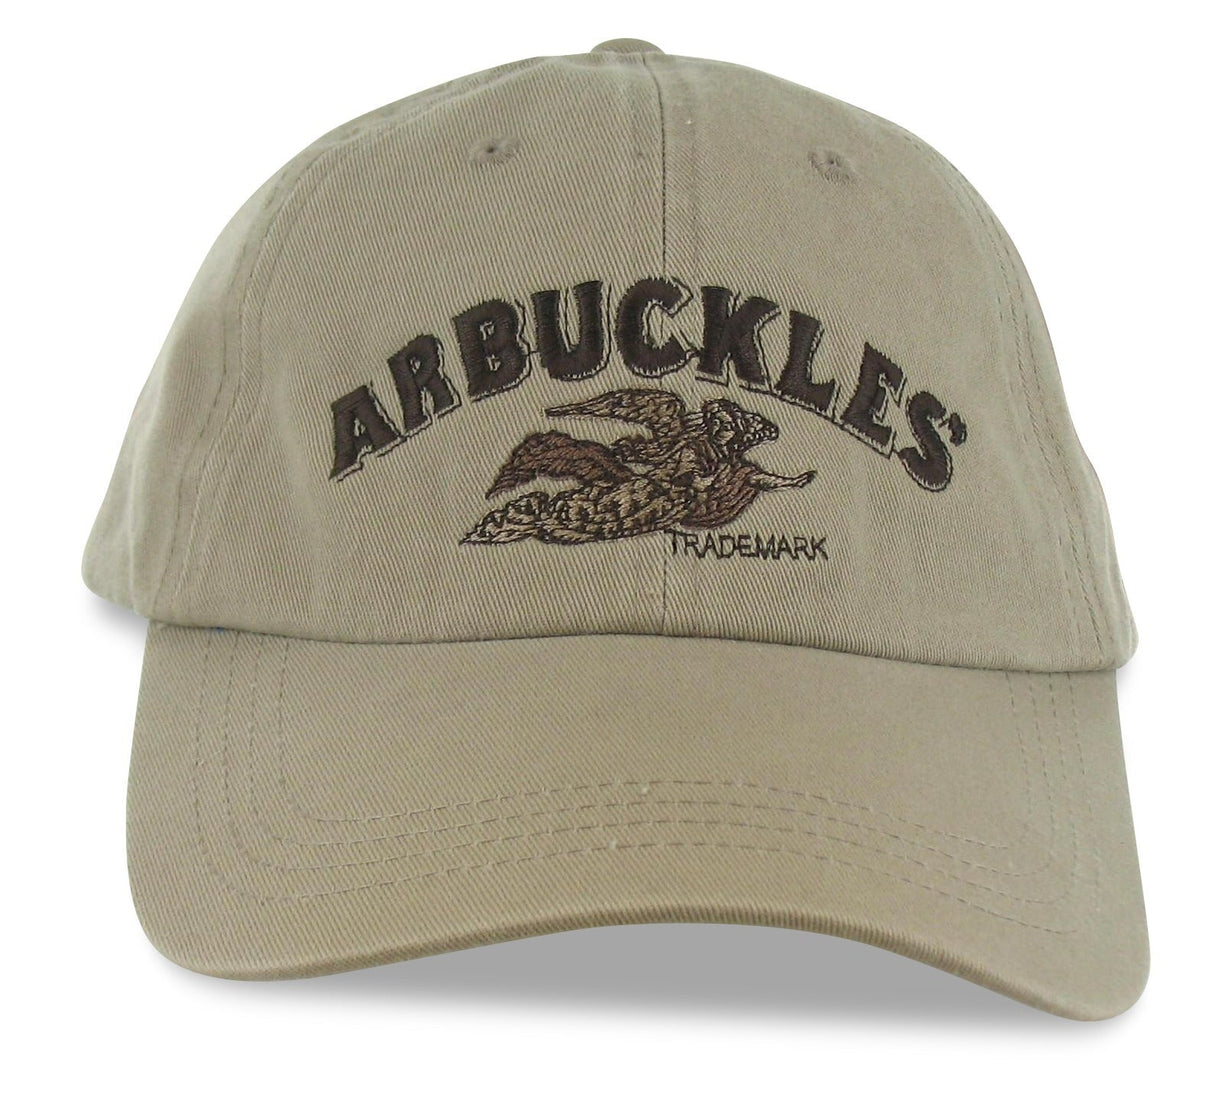 Arbuckle Caps